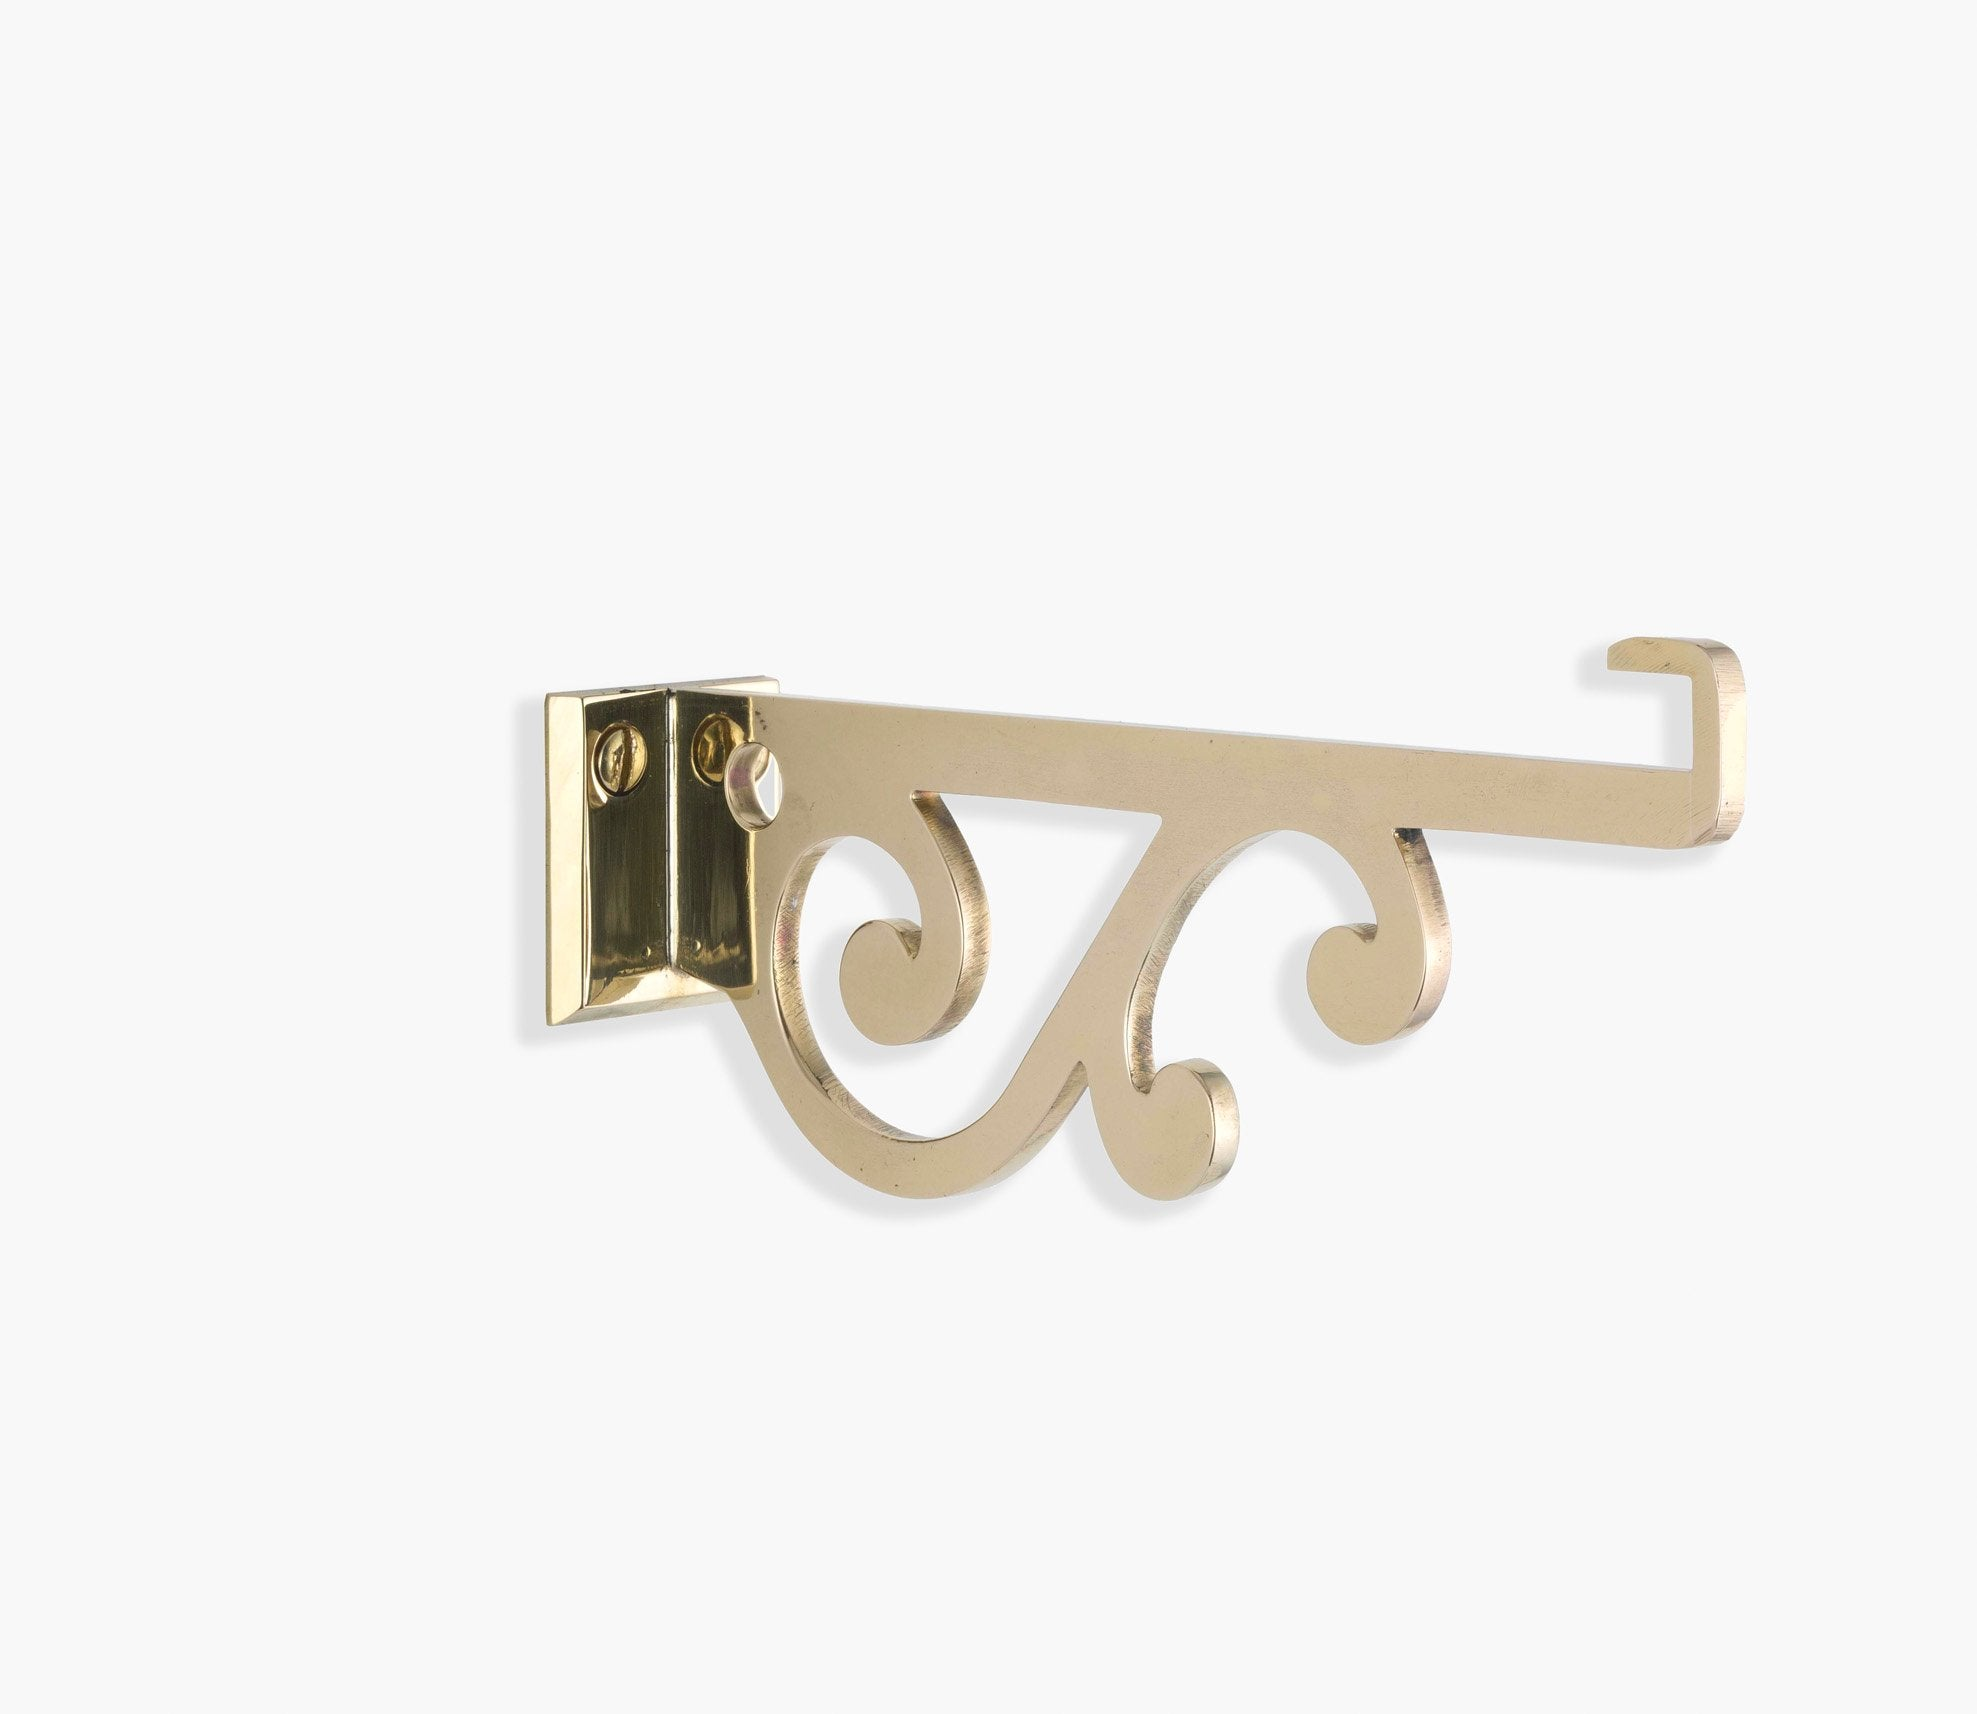 Shelf Bracket 095 Product Image 1